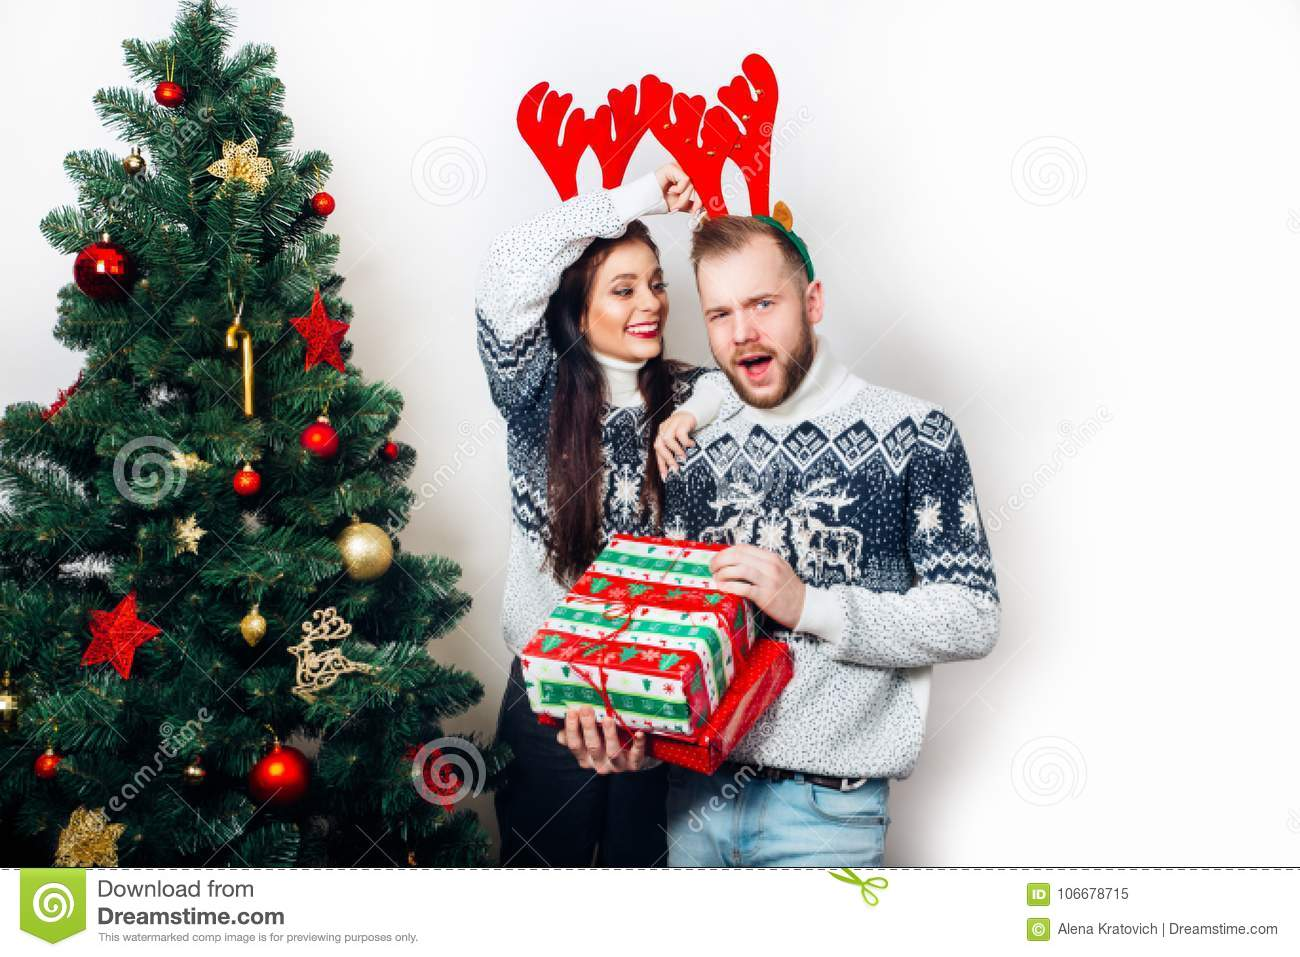 Download Christmas Funny Couple Enjoying In The Holidays And Gifts Stock Image